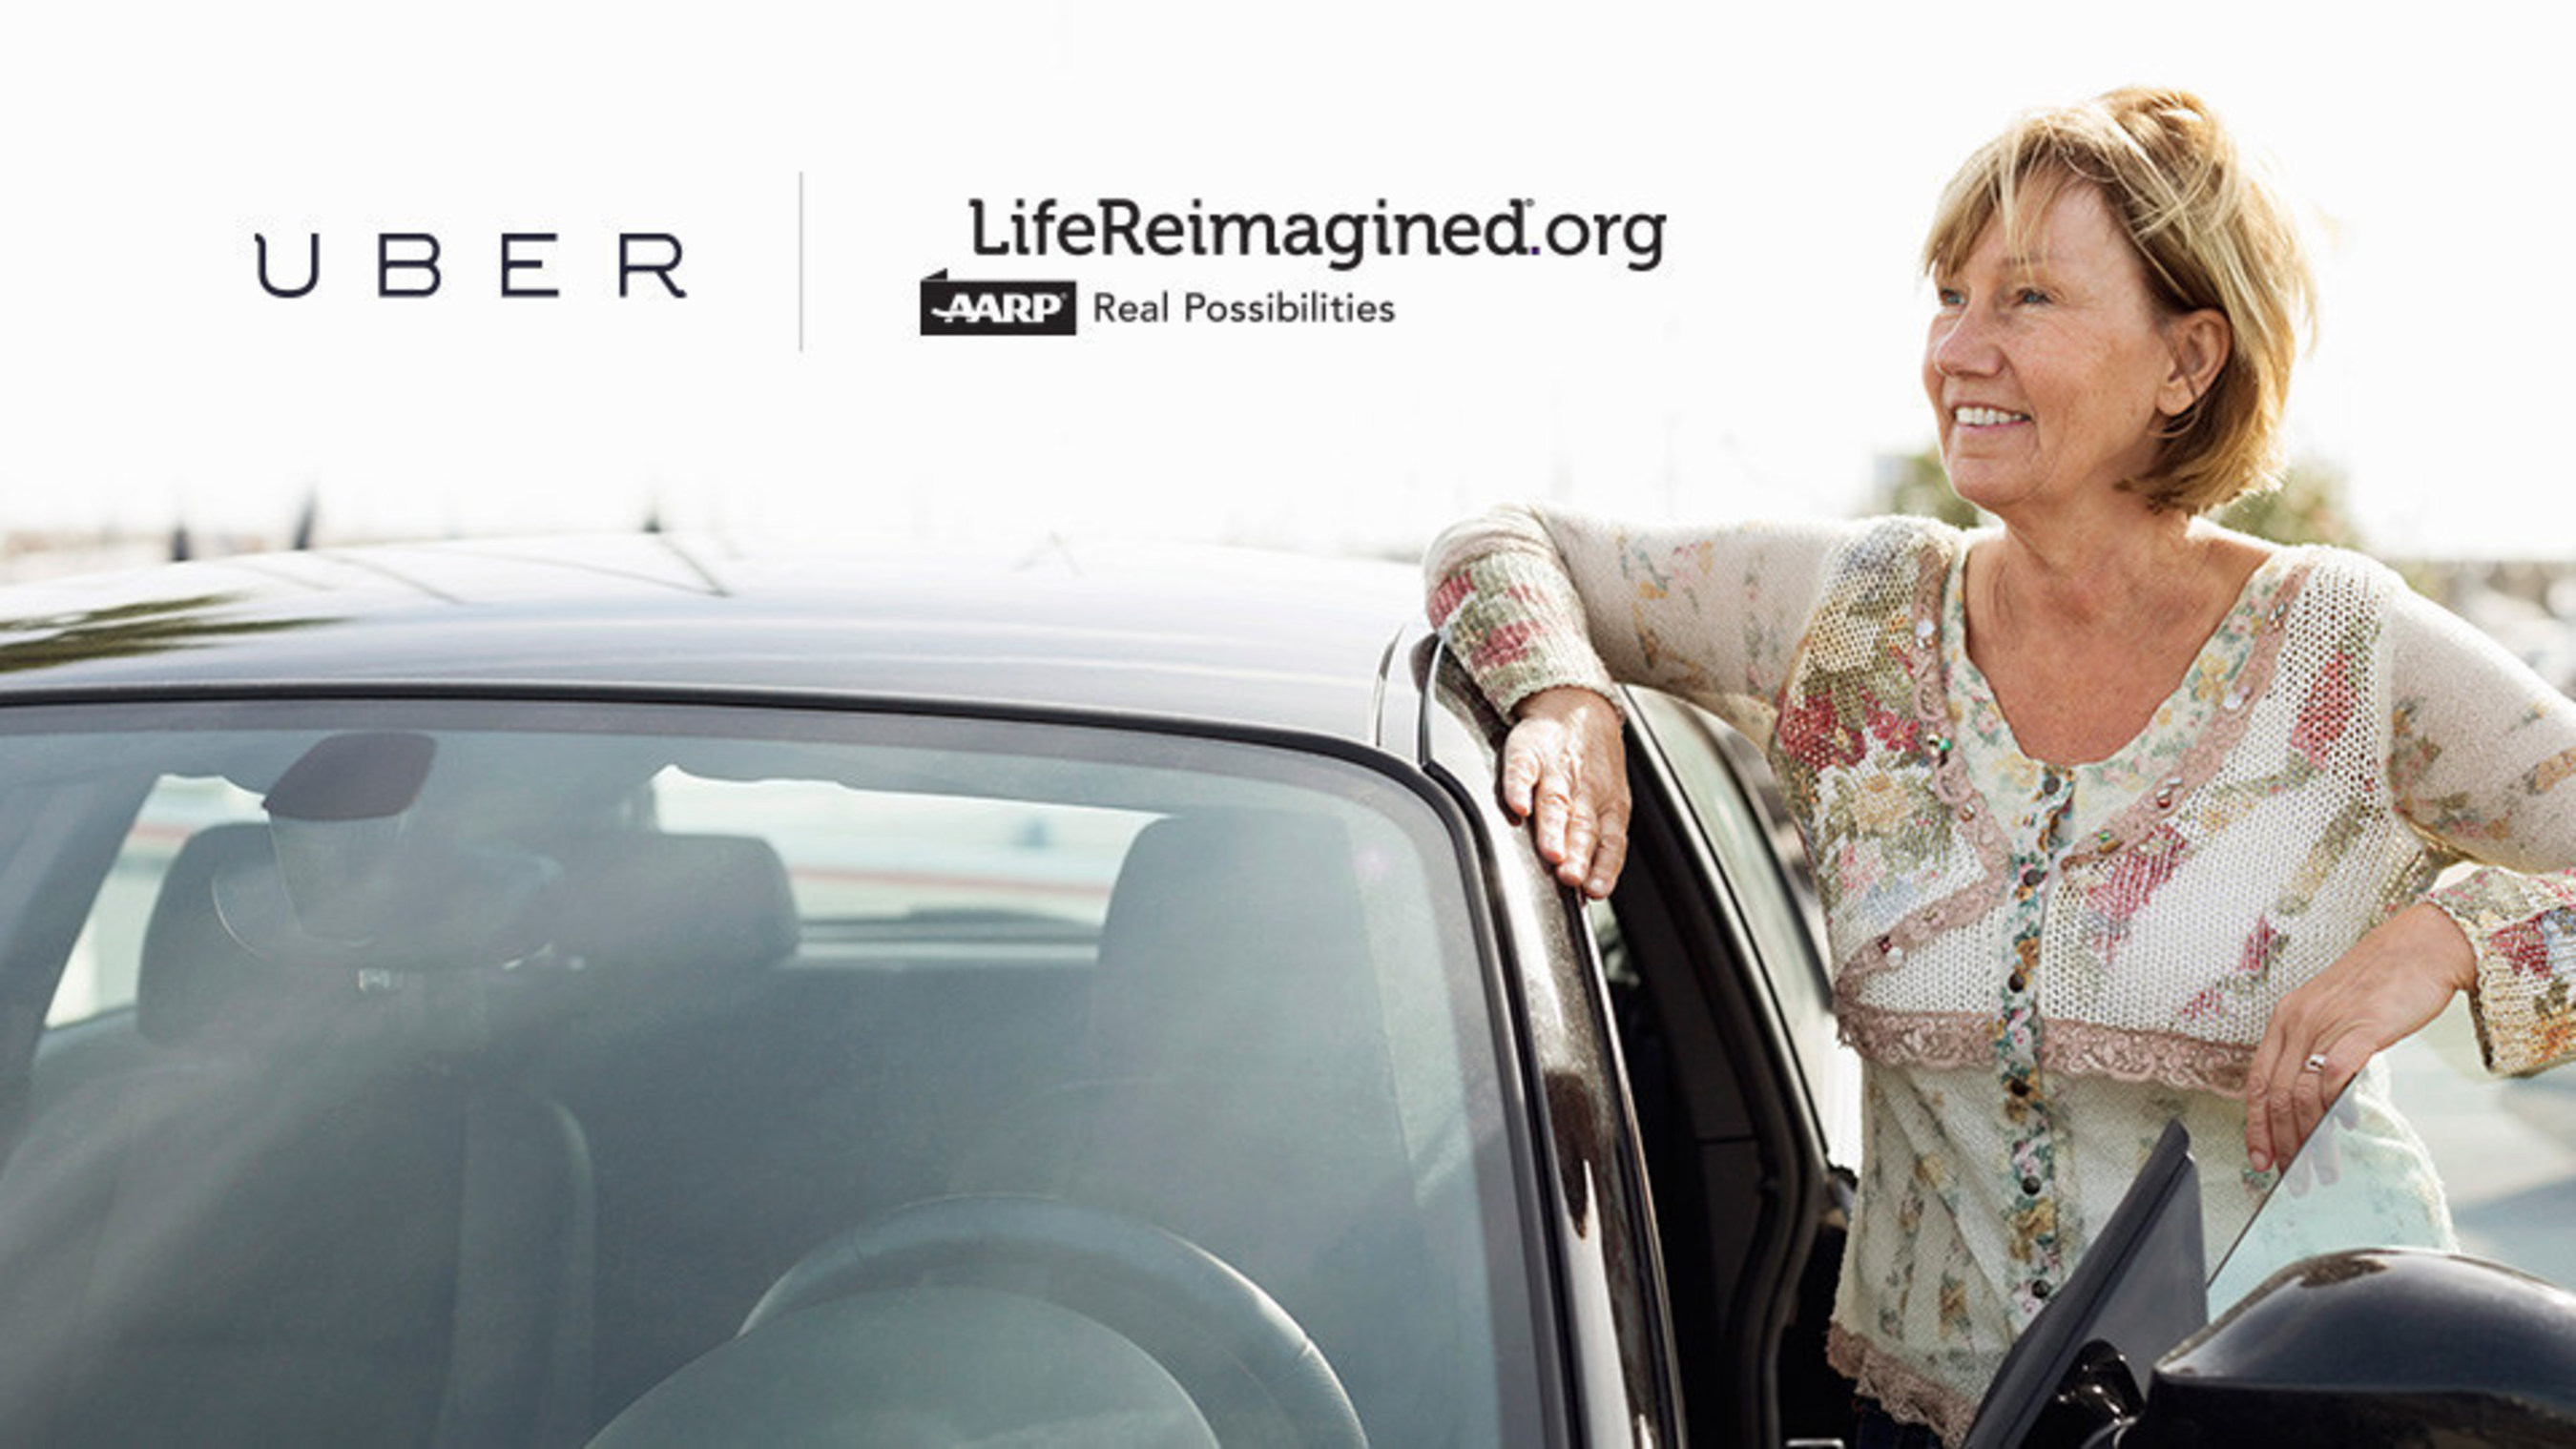 Life Reimagined and Uber